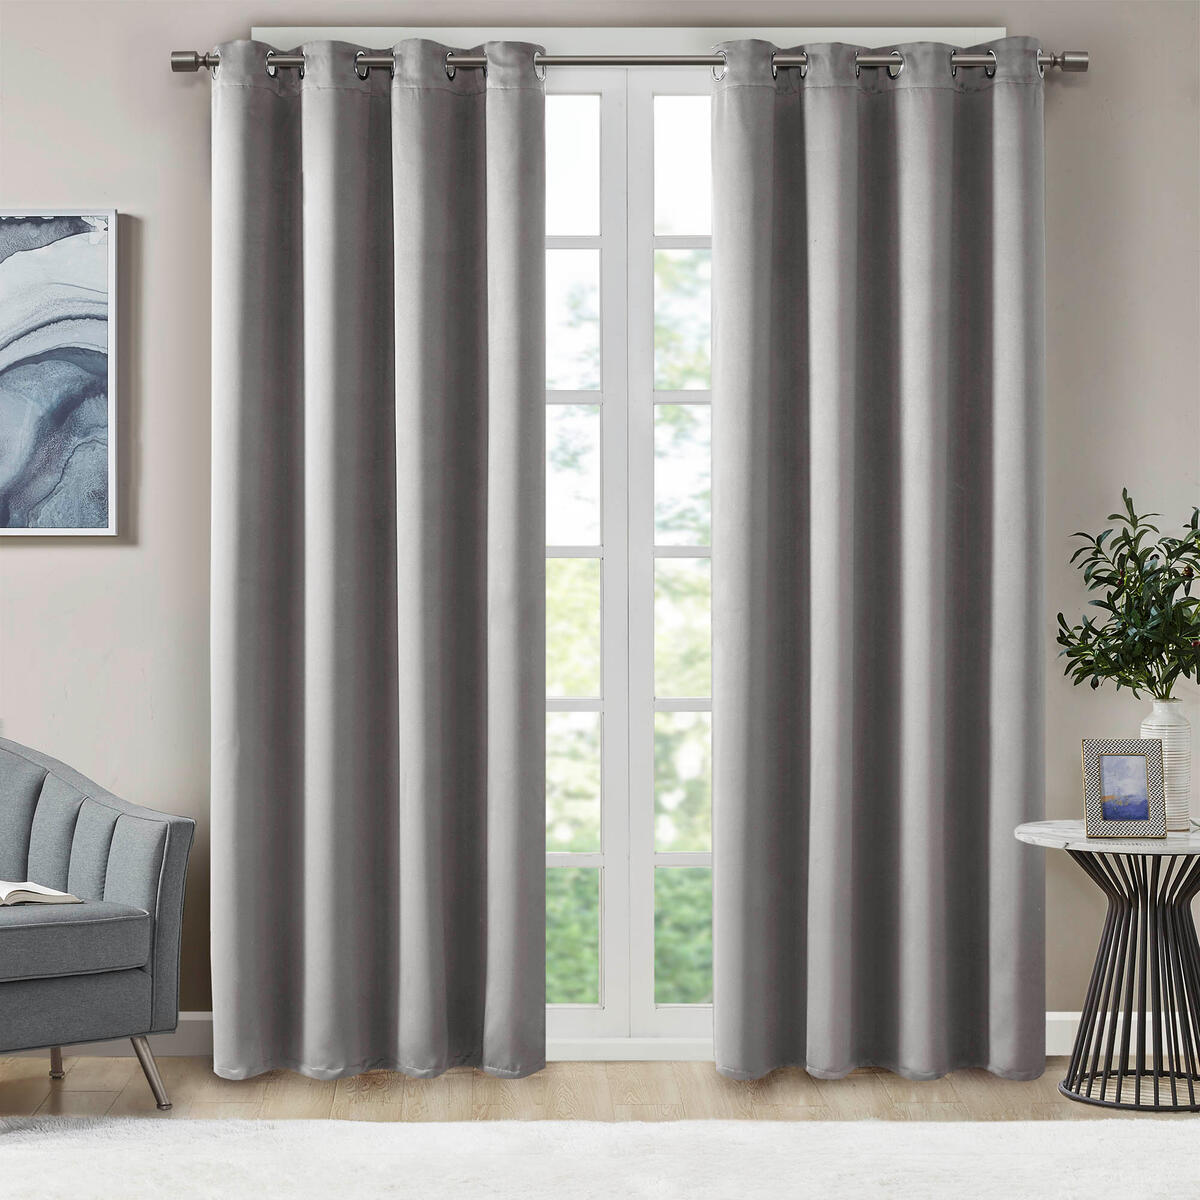 ANY COLOR - 42x84 - Blackout Curtains for Bedroom | Thermal Insulated Room Darkening Window Treatments W/Grommet Top | Triple Weave | Ideal for Nursery Or Kids Room | Any Color 42x84 - 2 Panels